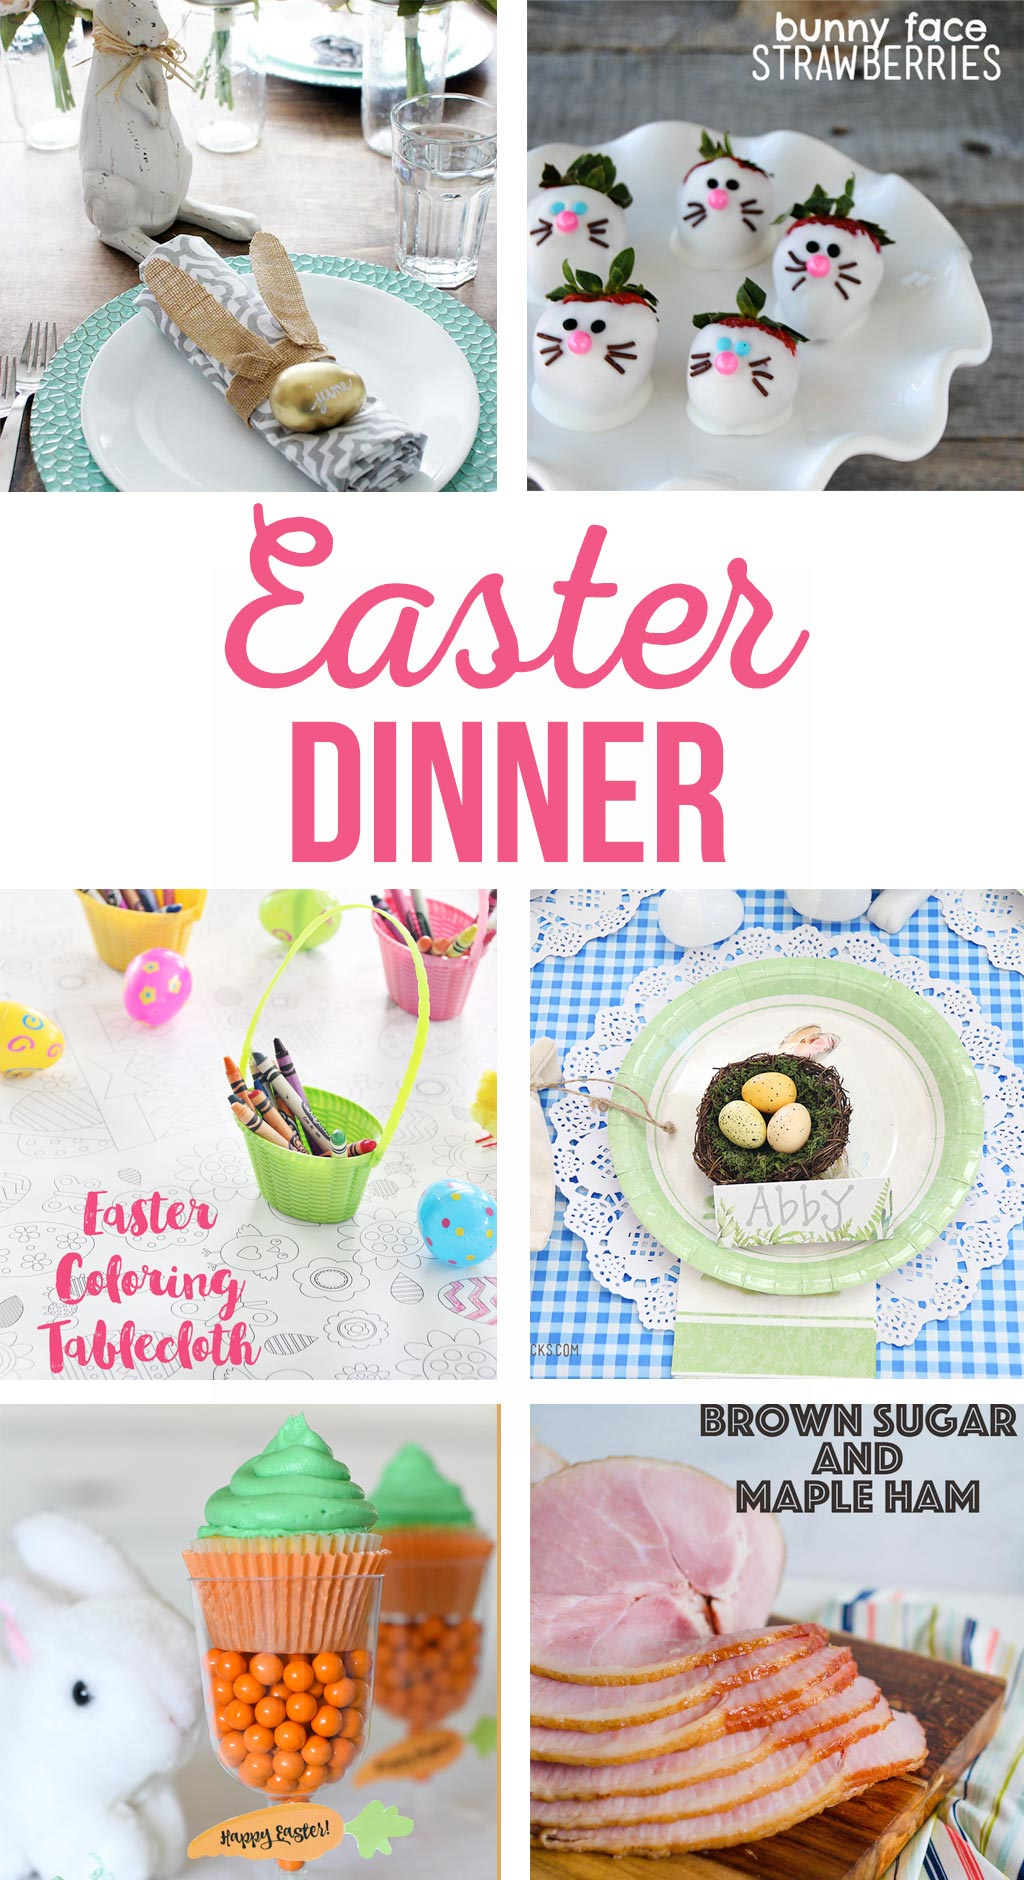 Hosting Easter Dinner | Everything you need to host Easter dinner at your house.  Easter dinner menu, Easter table settings, Easter centerpiece, Easter kids crafts, and yummy Easter desserts!